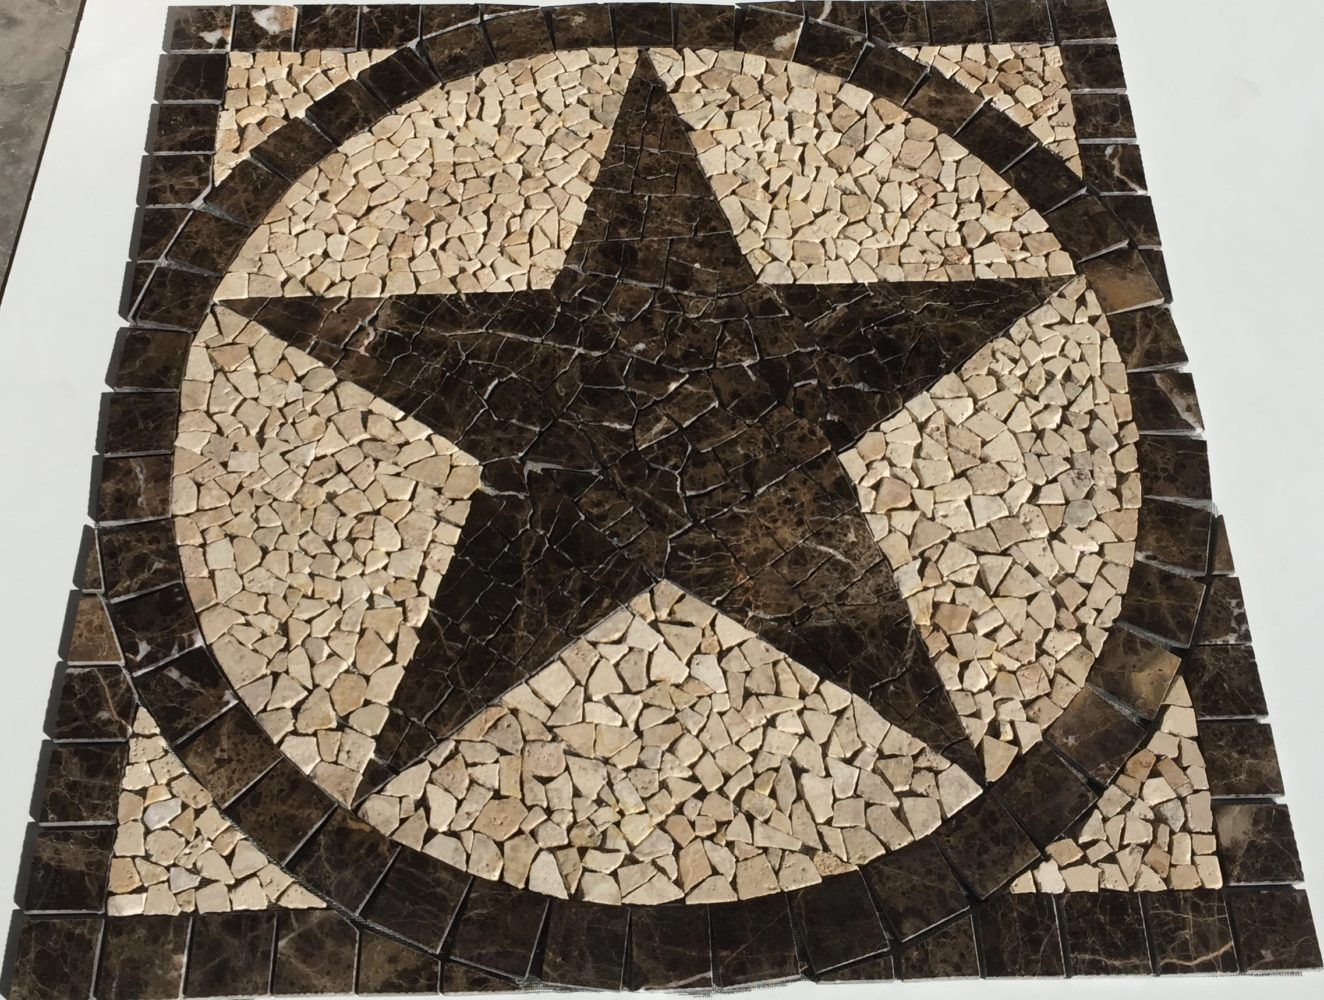 36 Emperor Marble Texas Star Mosaic Medallion Backsplash Floor Design Mural Jdyermosaics